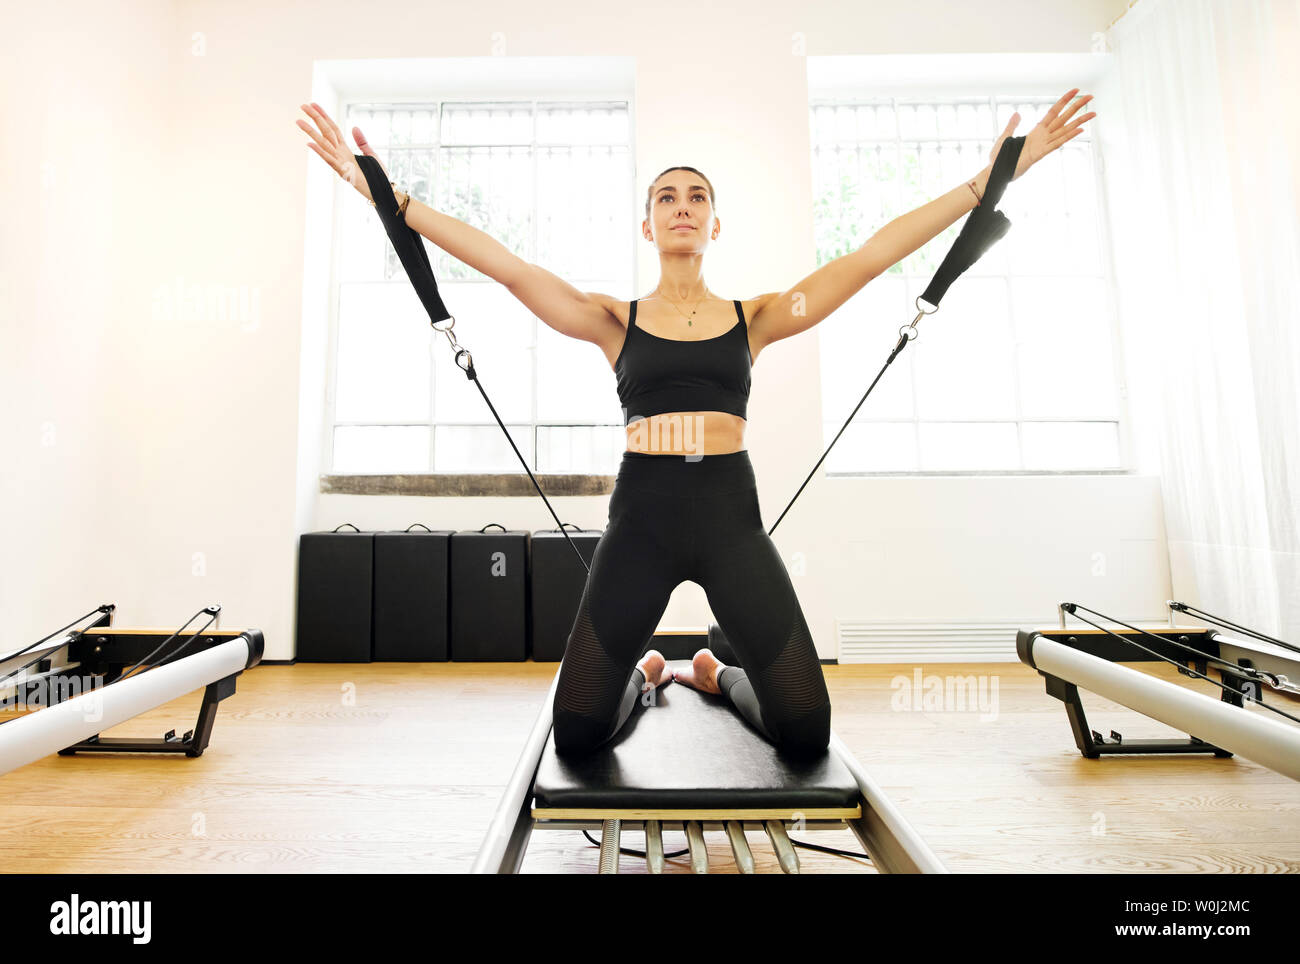 Single adult woman doing yoga arm work with straps exercise on reformer pilates bed - Stock Image